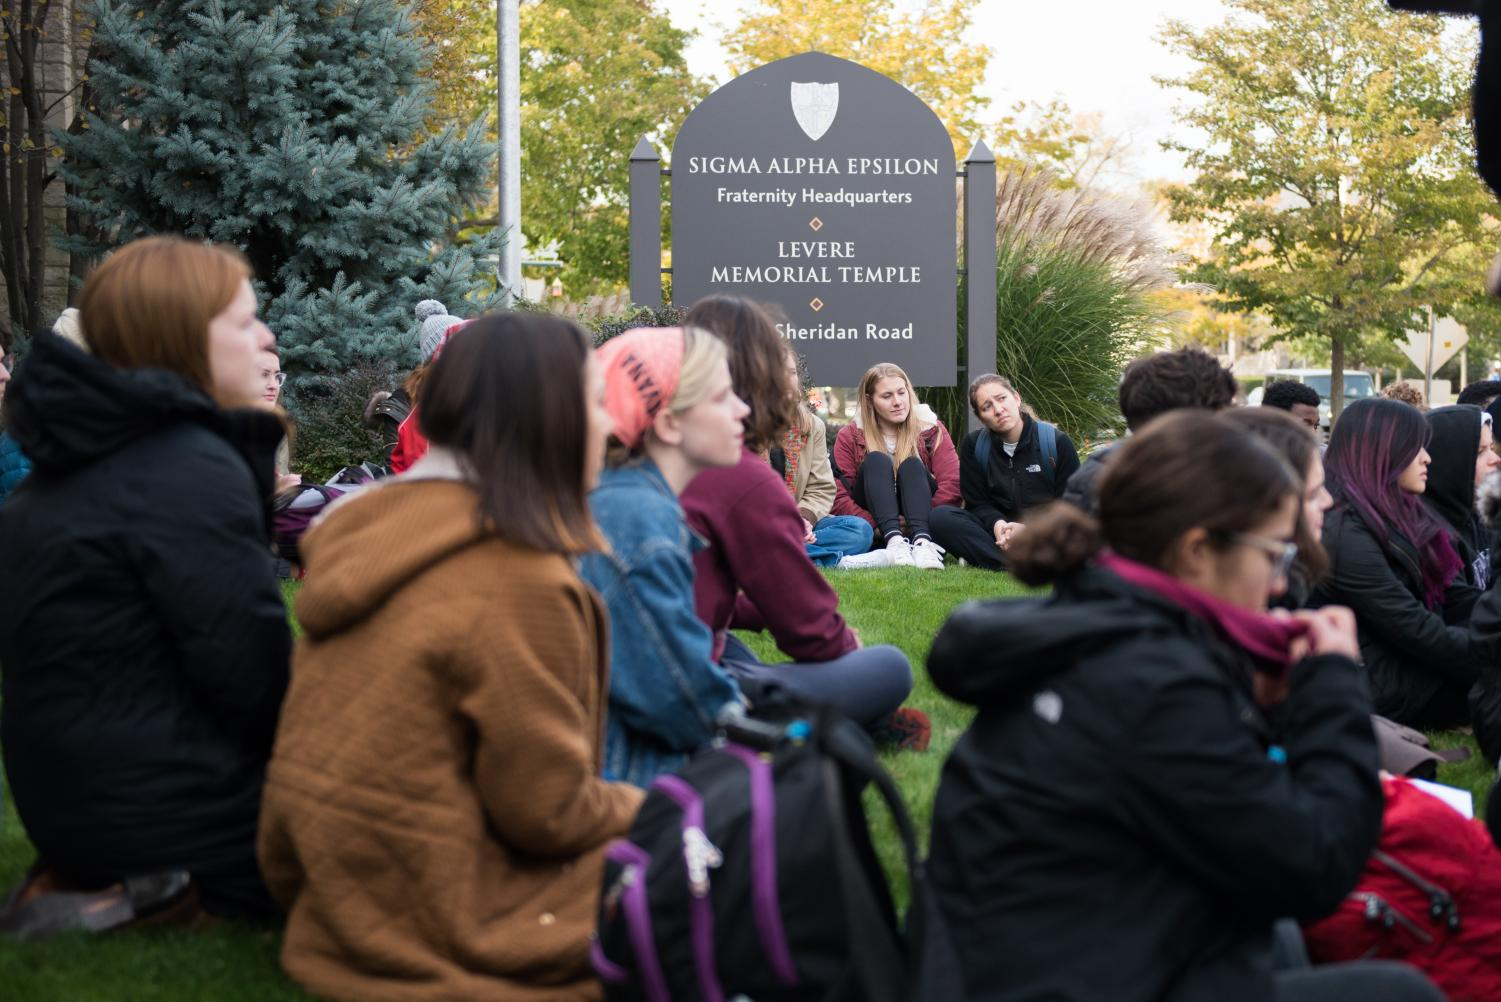 Students sit on the lawn of Sigma Alpha Epsilon's headquarters as part of a protest to support survivors of sexual assault. Several students shared their concerns about rape culture as well as their own stories.